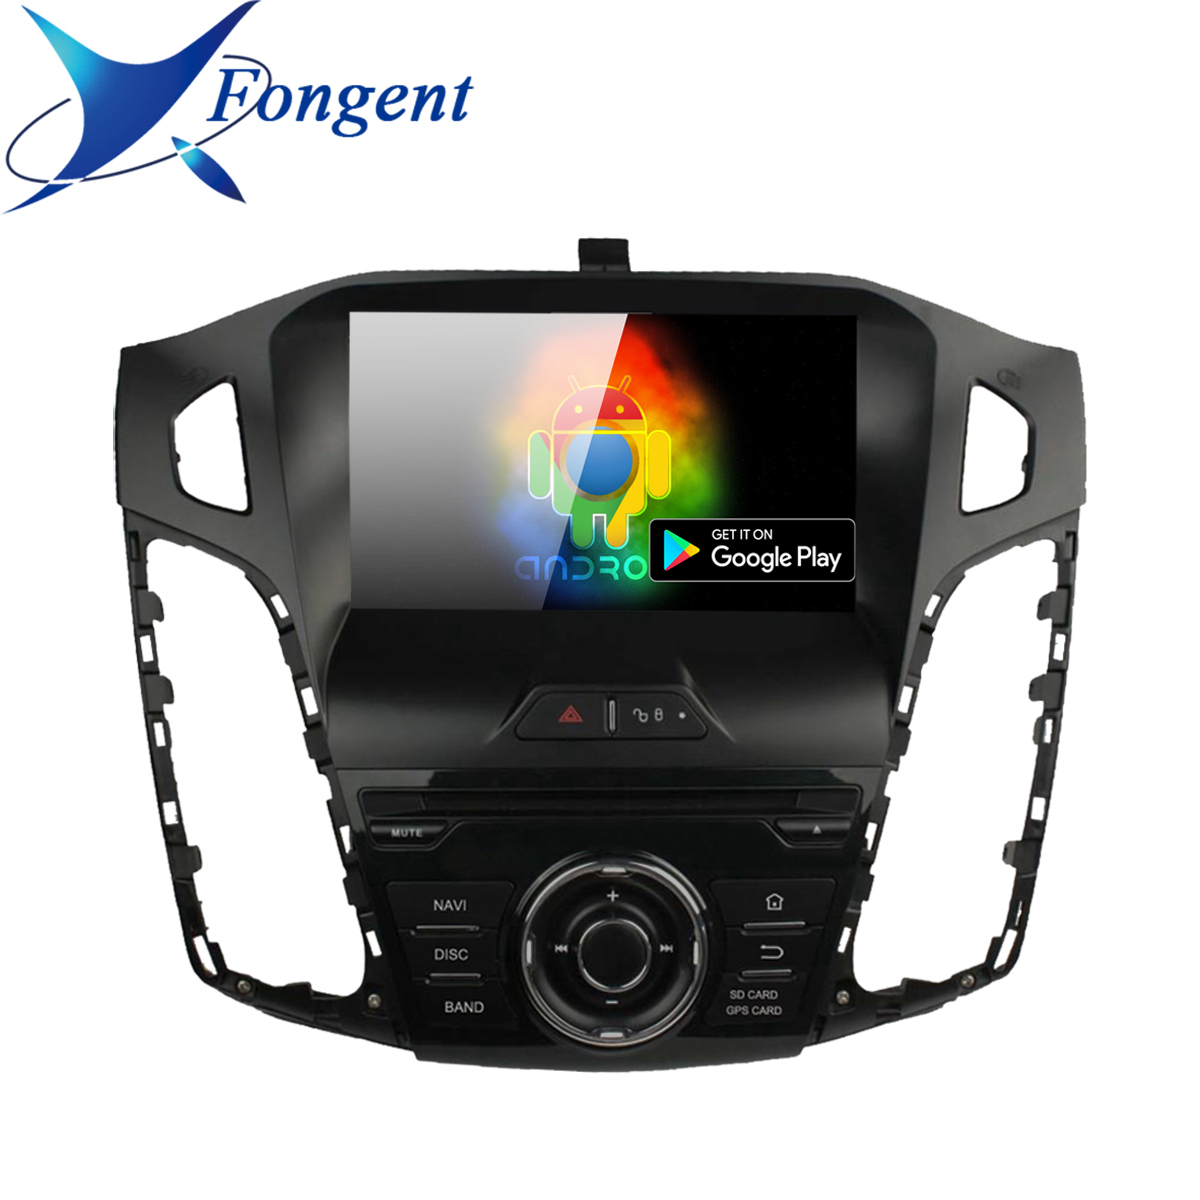 Android Car DVD For <font><b>Ford</b></font> 2011 2012 2013 2014 2015 2016 <font><b>2017</b></font> 2018 <font><b>Focus</b></font> Auto Audio Video Radio FM RDS Stereo WiFi GPS <font><b>Navigation</b></font> image